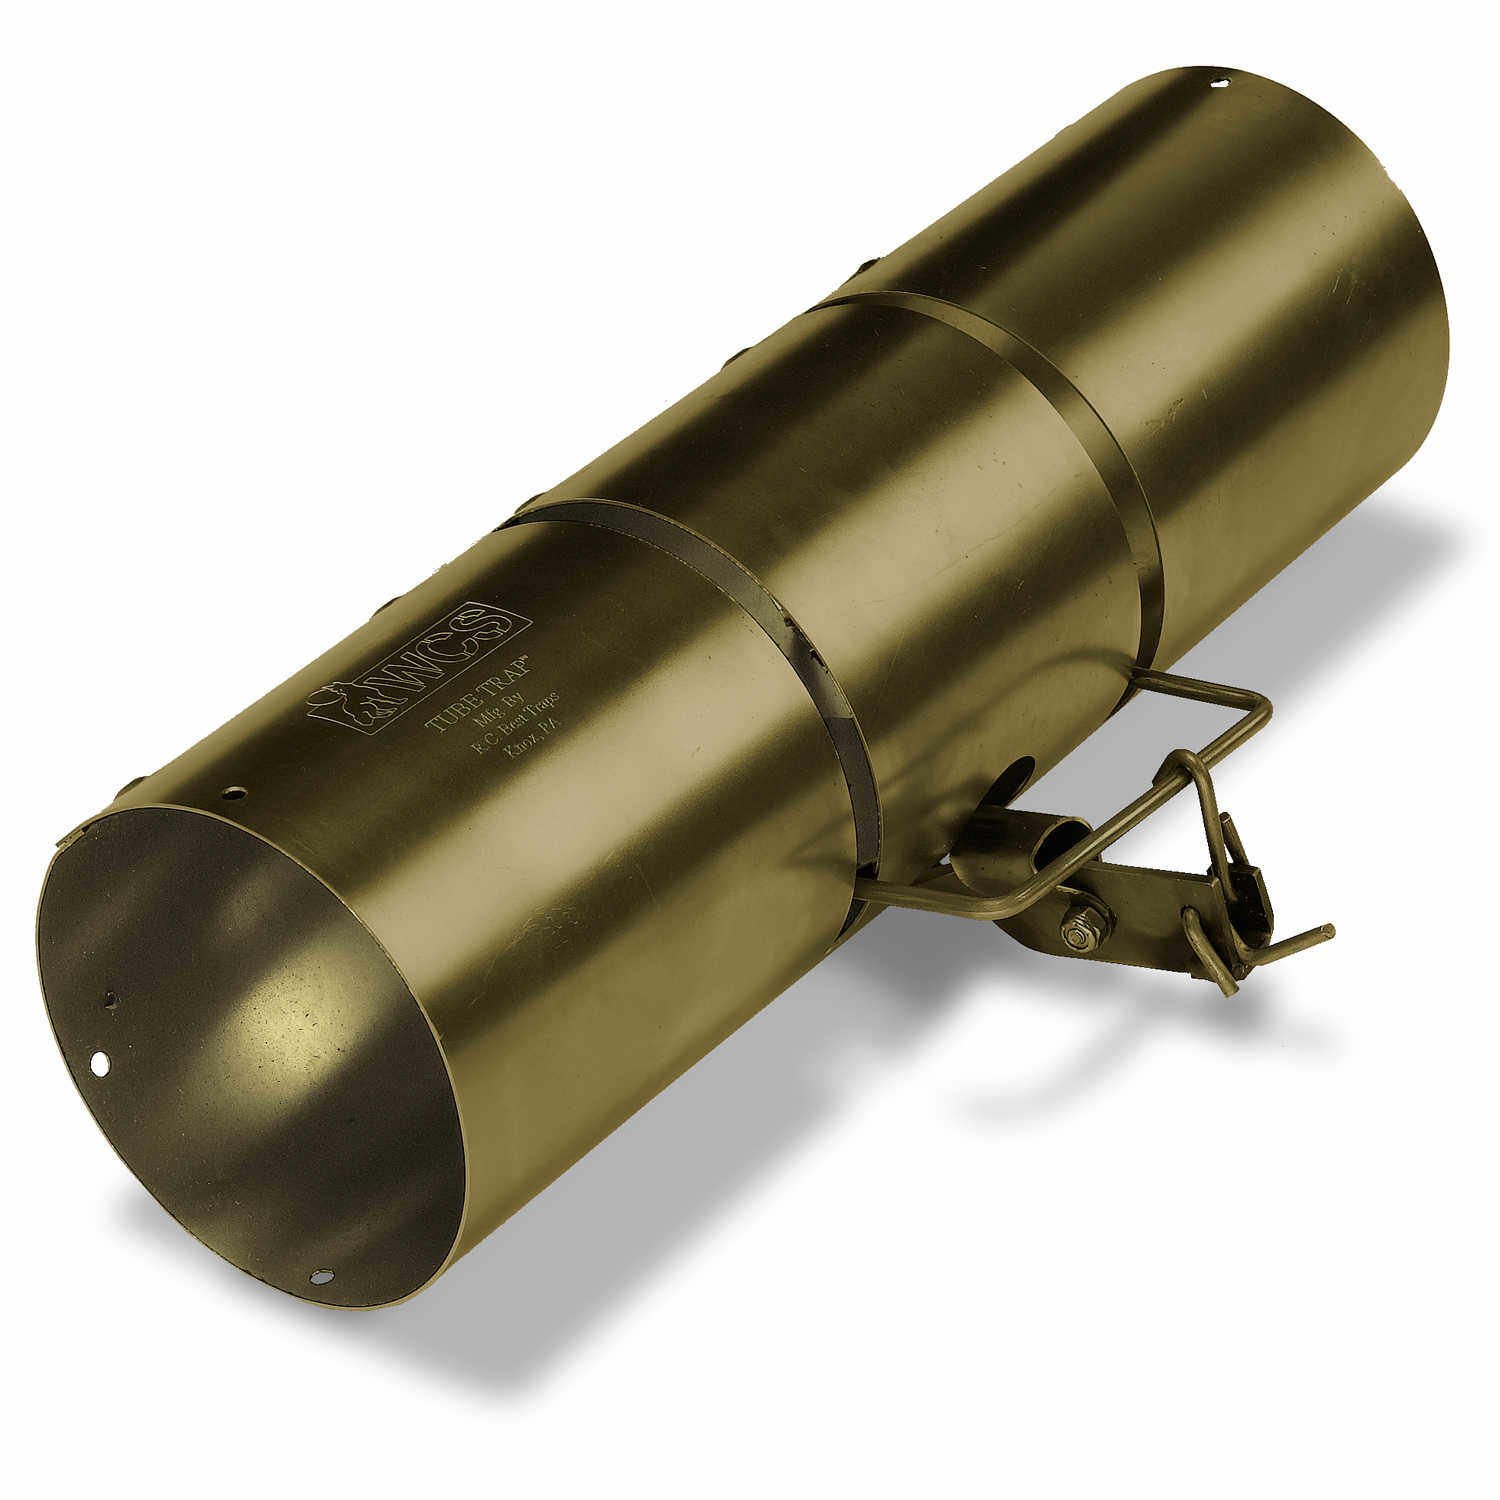 Forestry Suppliers Tube Trap Squirrel Trap (Rust-Resistant) by WCS